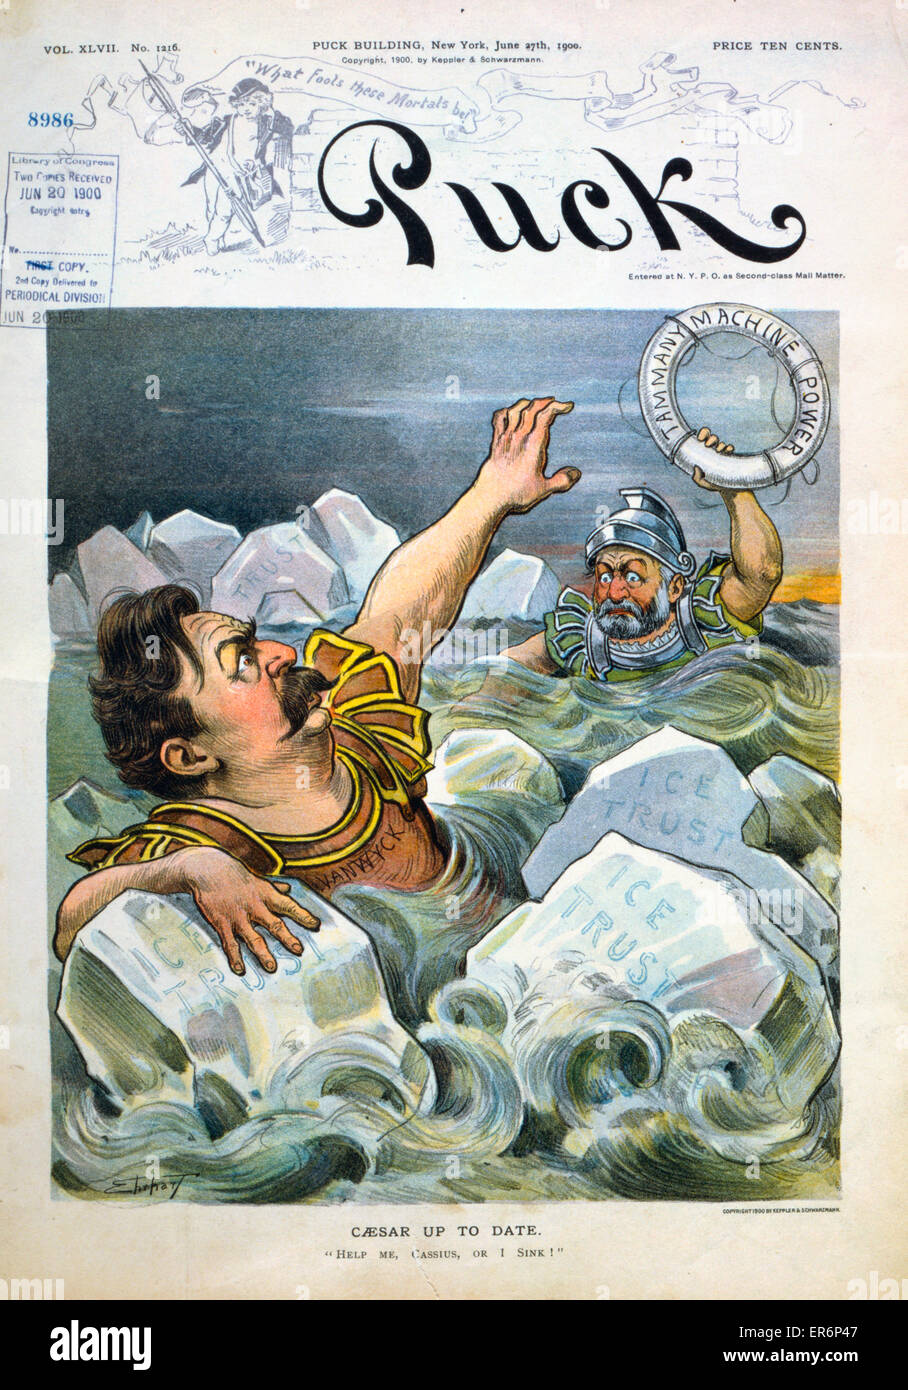 Caesar up to date. Robert Van Wyck, in body of water, holding onto ice blocks ice trust, and saying to man wearing - Stock Image